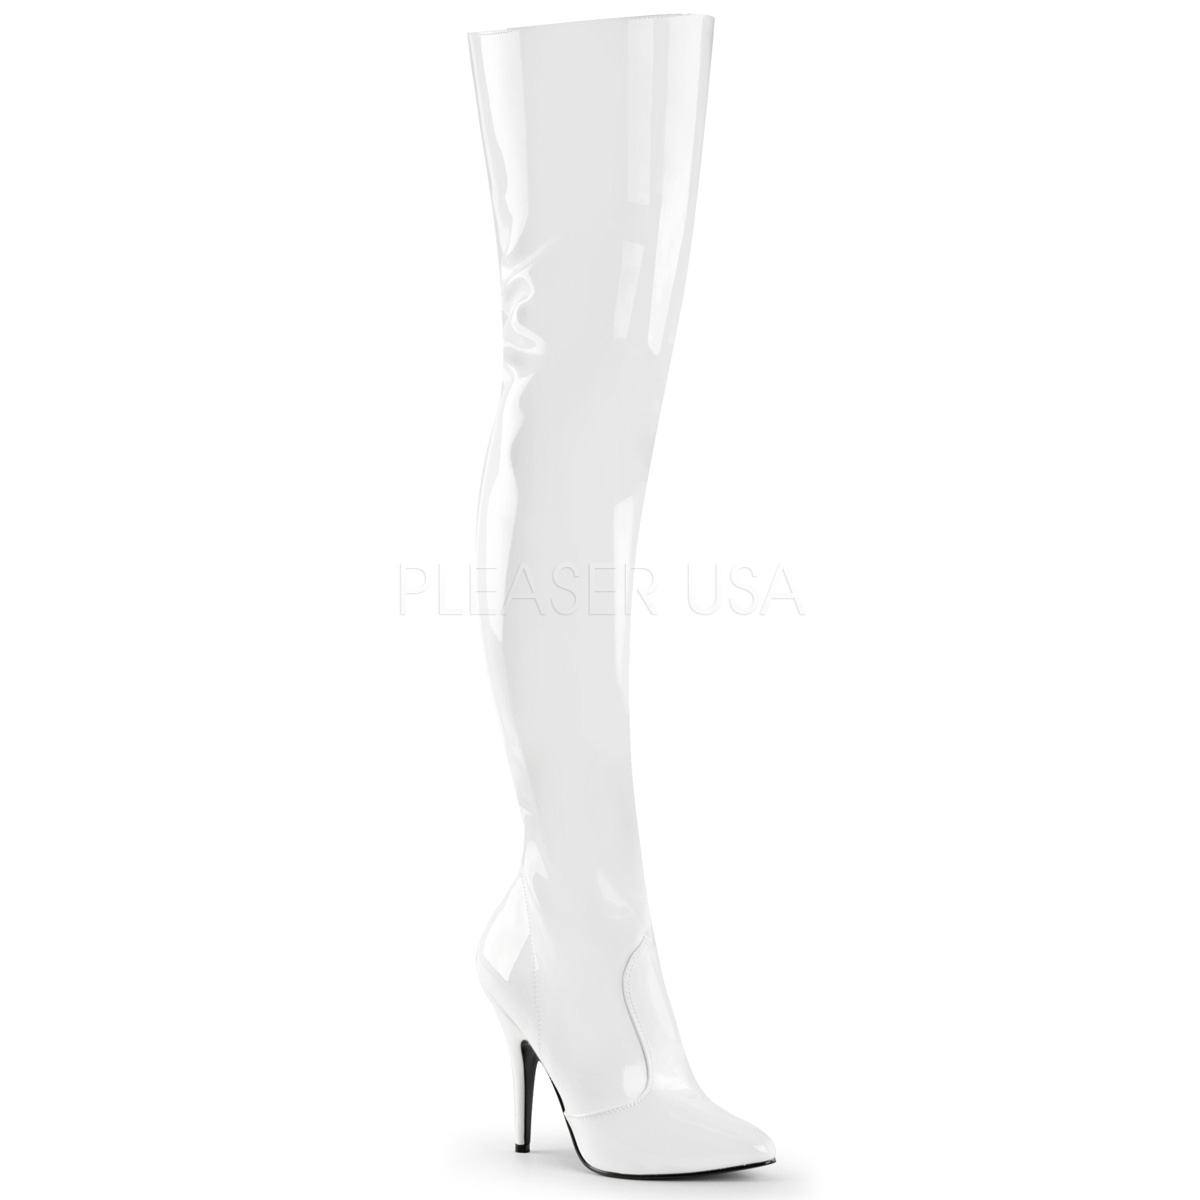 5 Inch Stiletto Heel Thigh High Boots